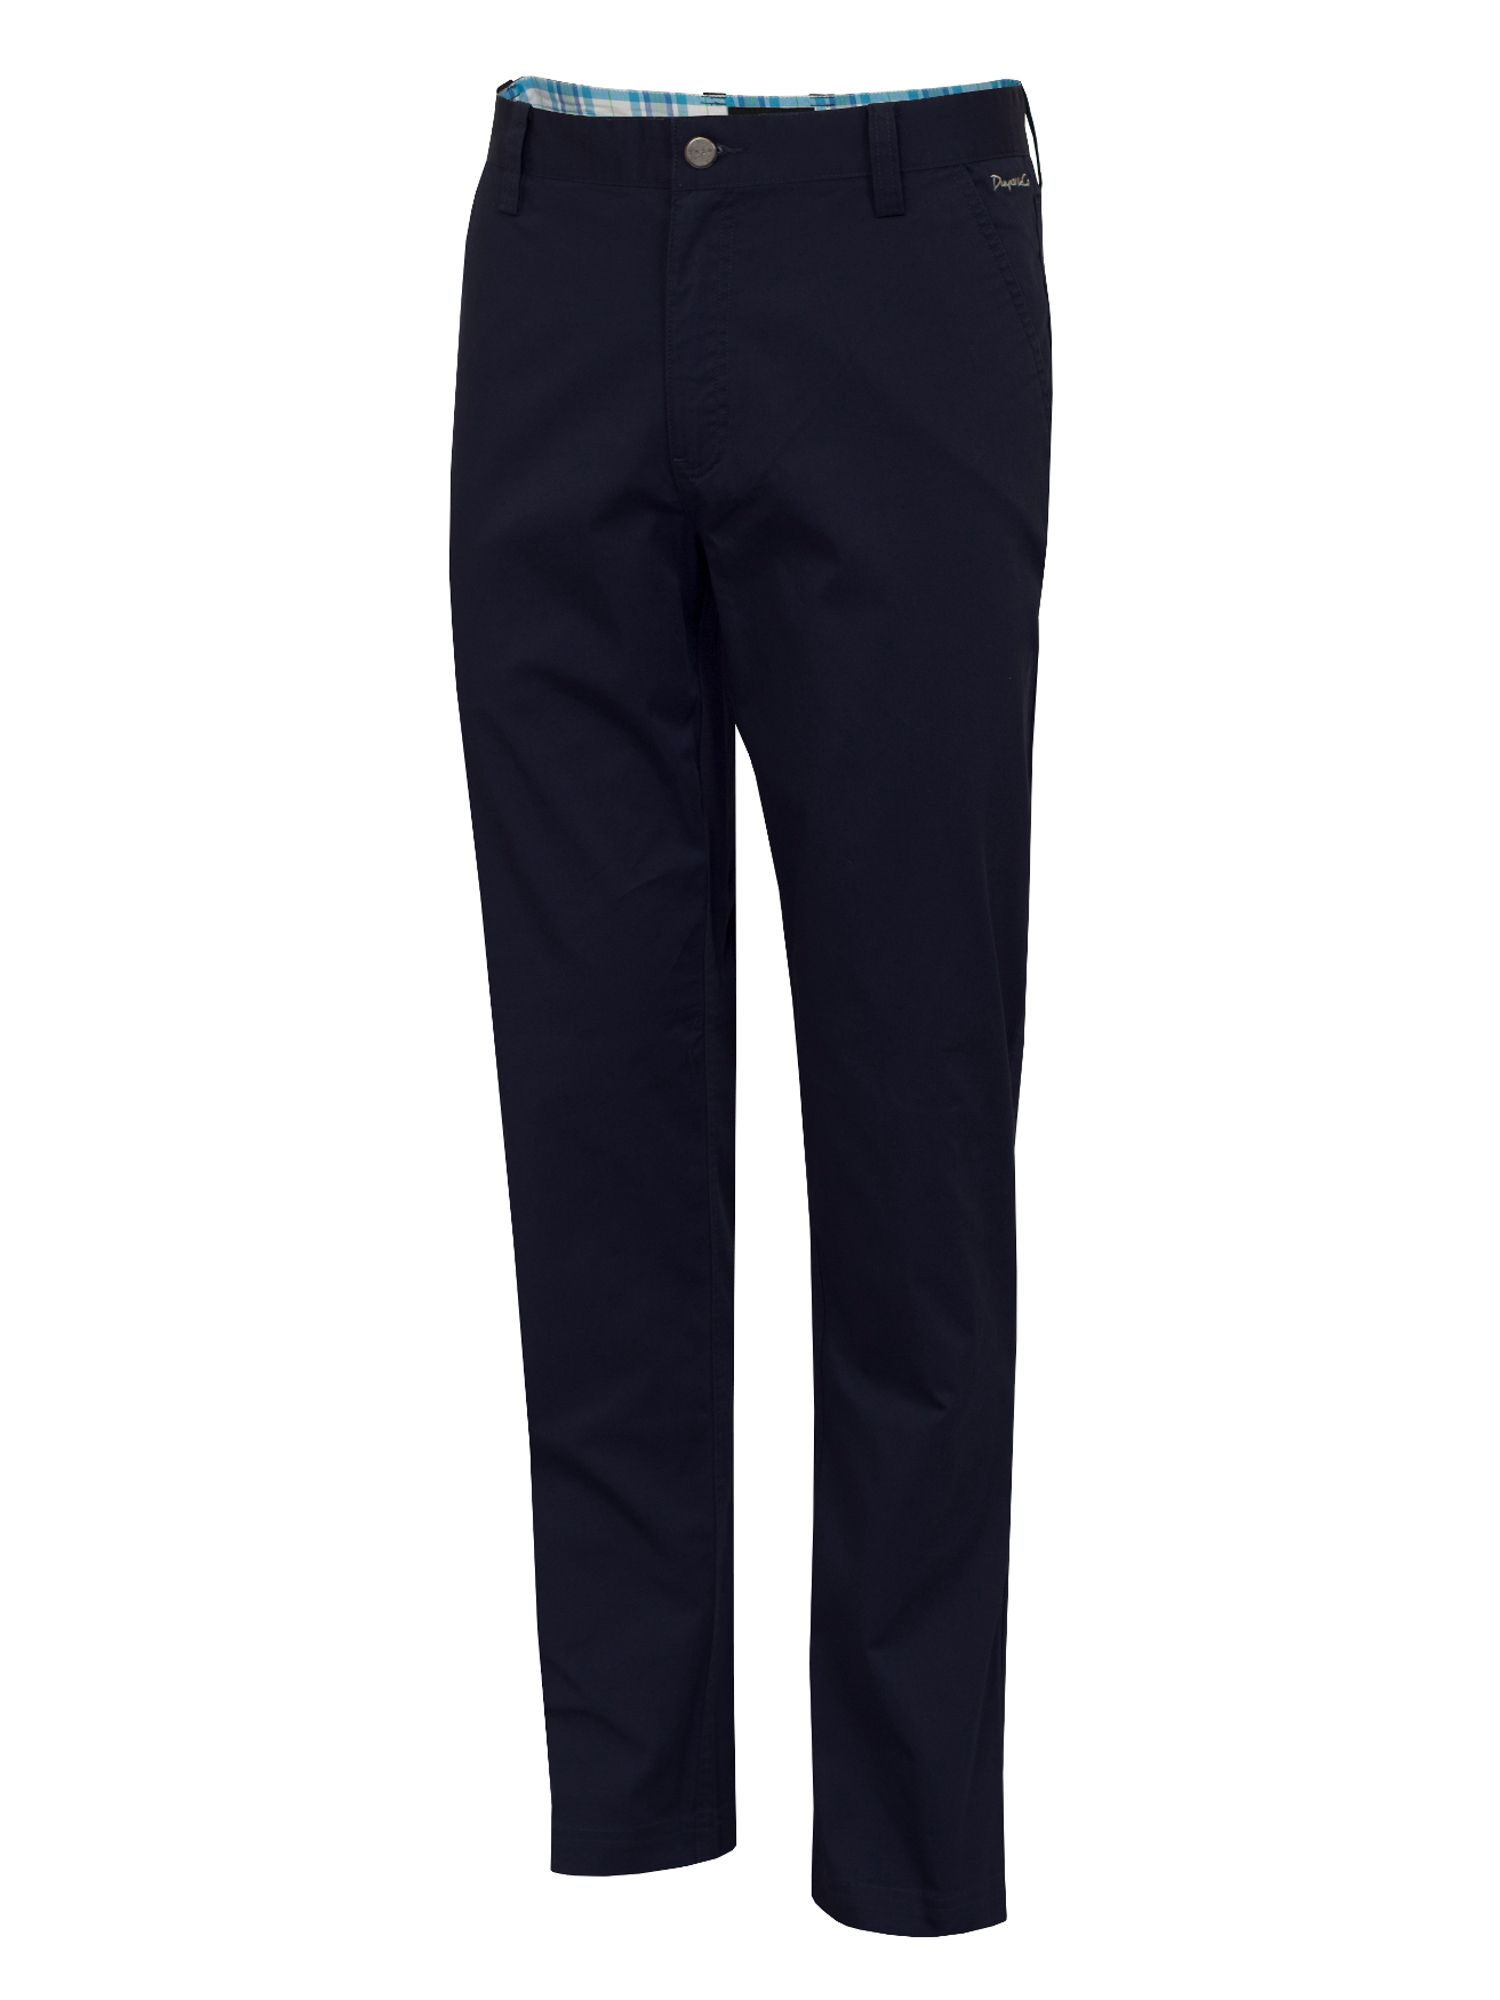 Dwyers and Co Men's Dwyers and Co Titanium chino trouser, Navy